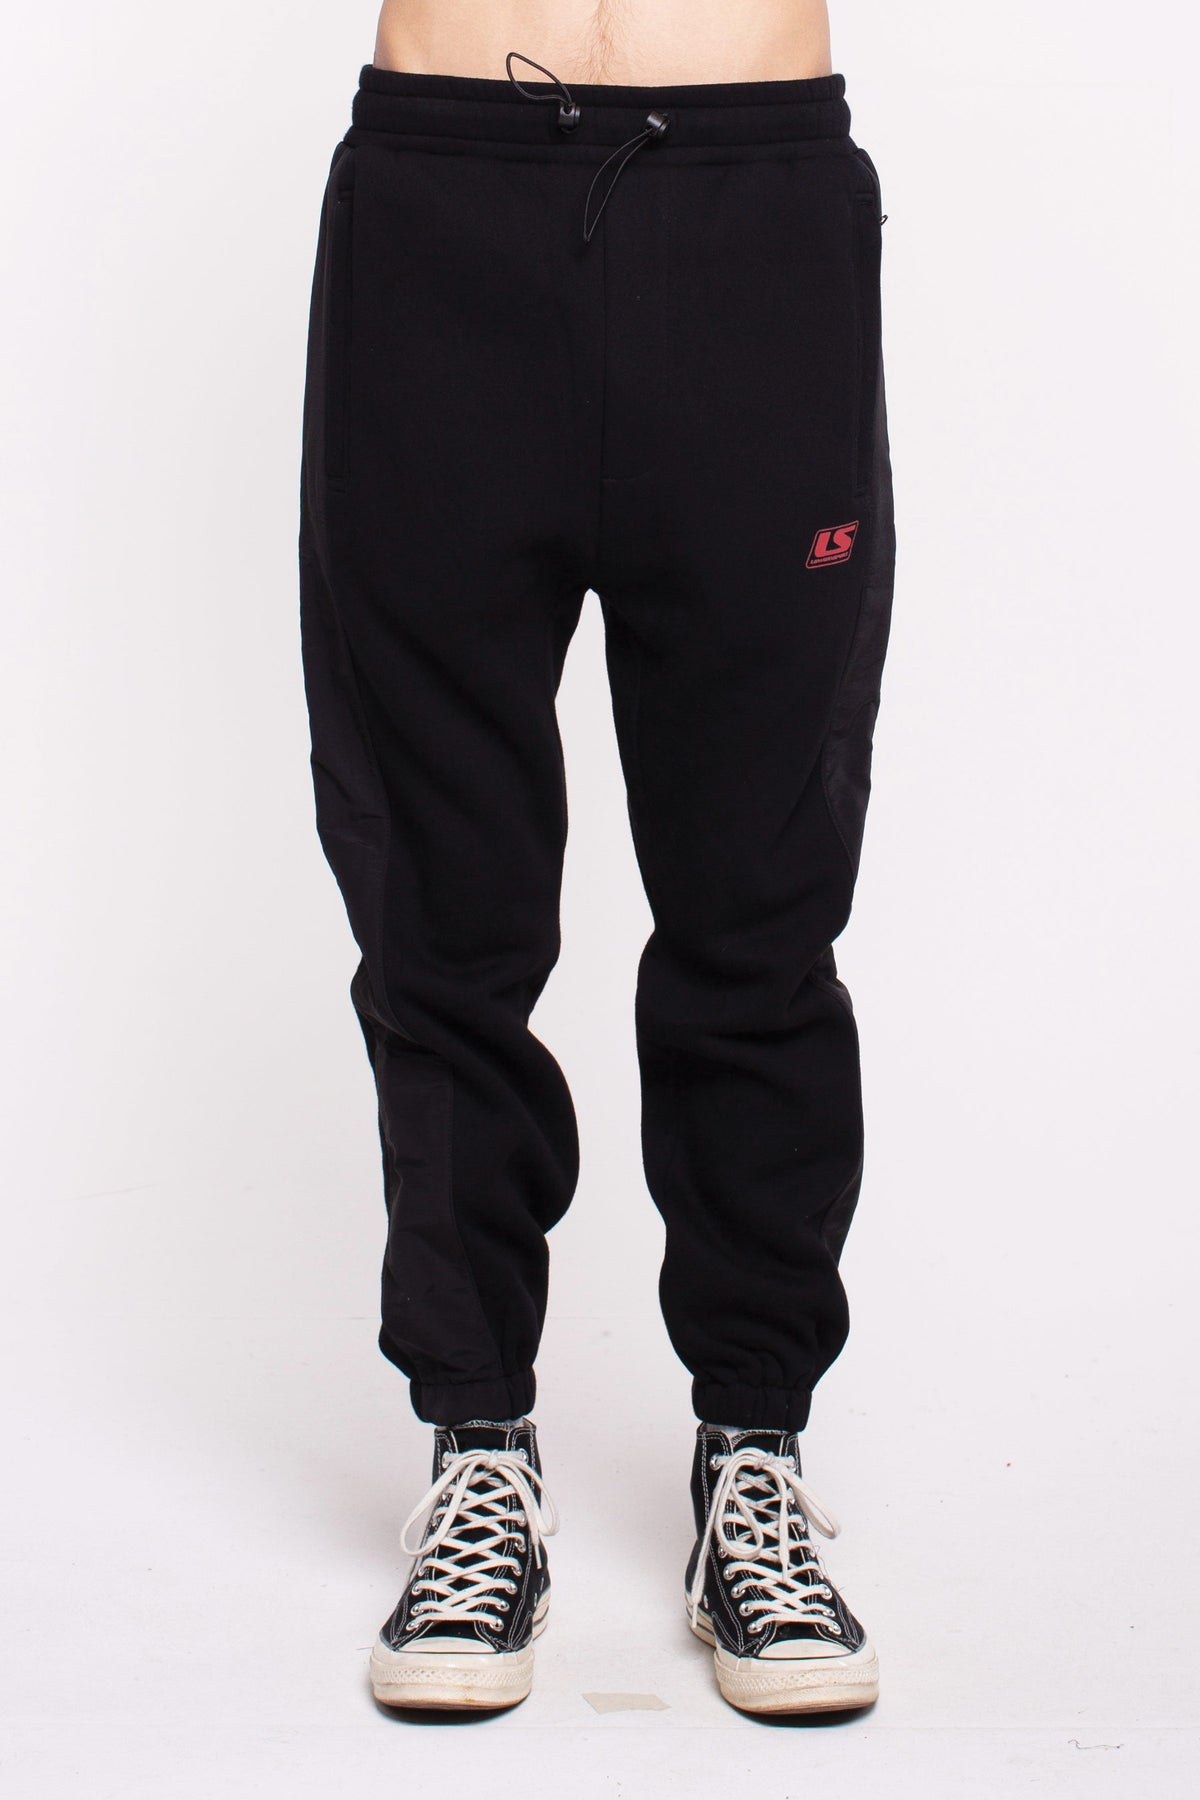 Hurdle Team Trackpants - Black